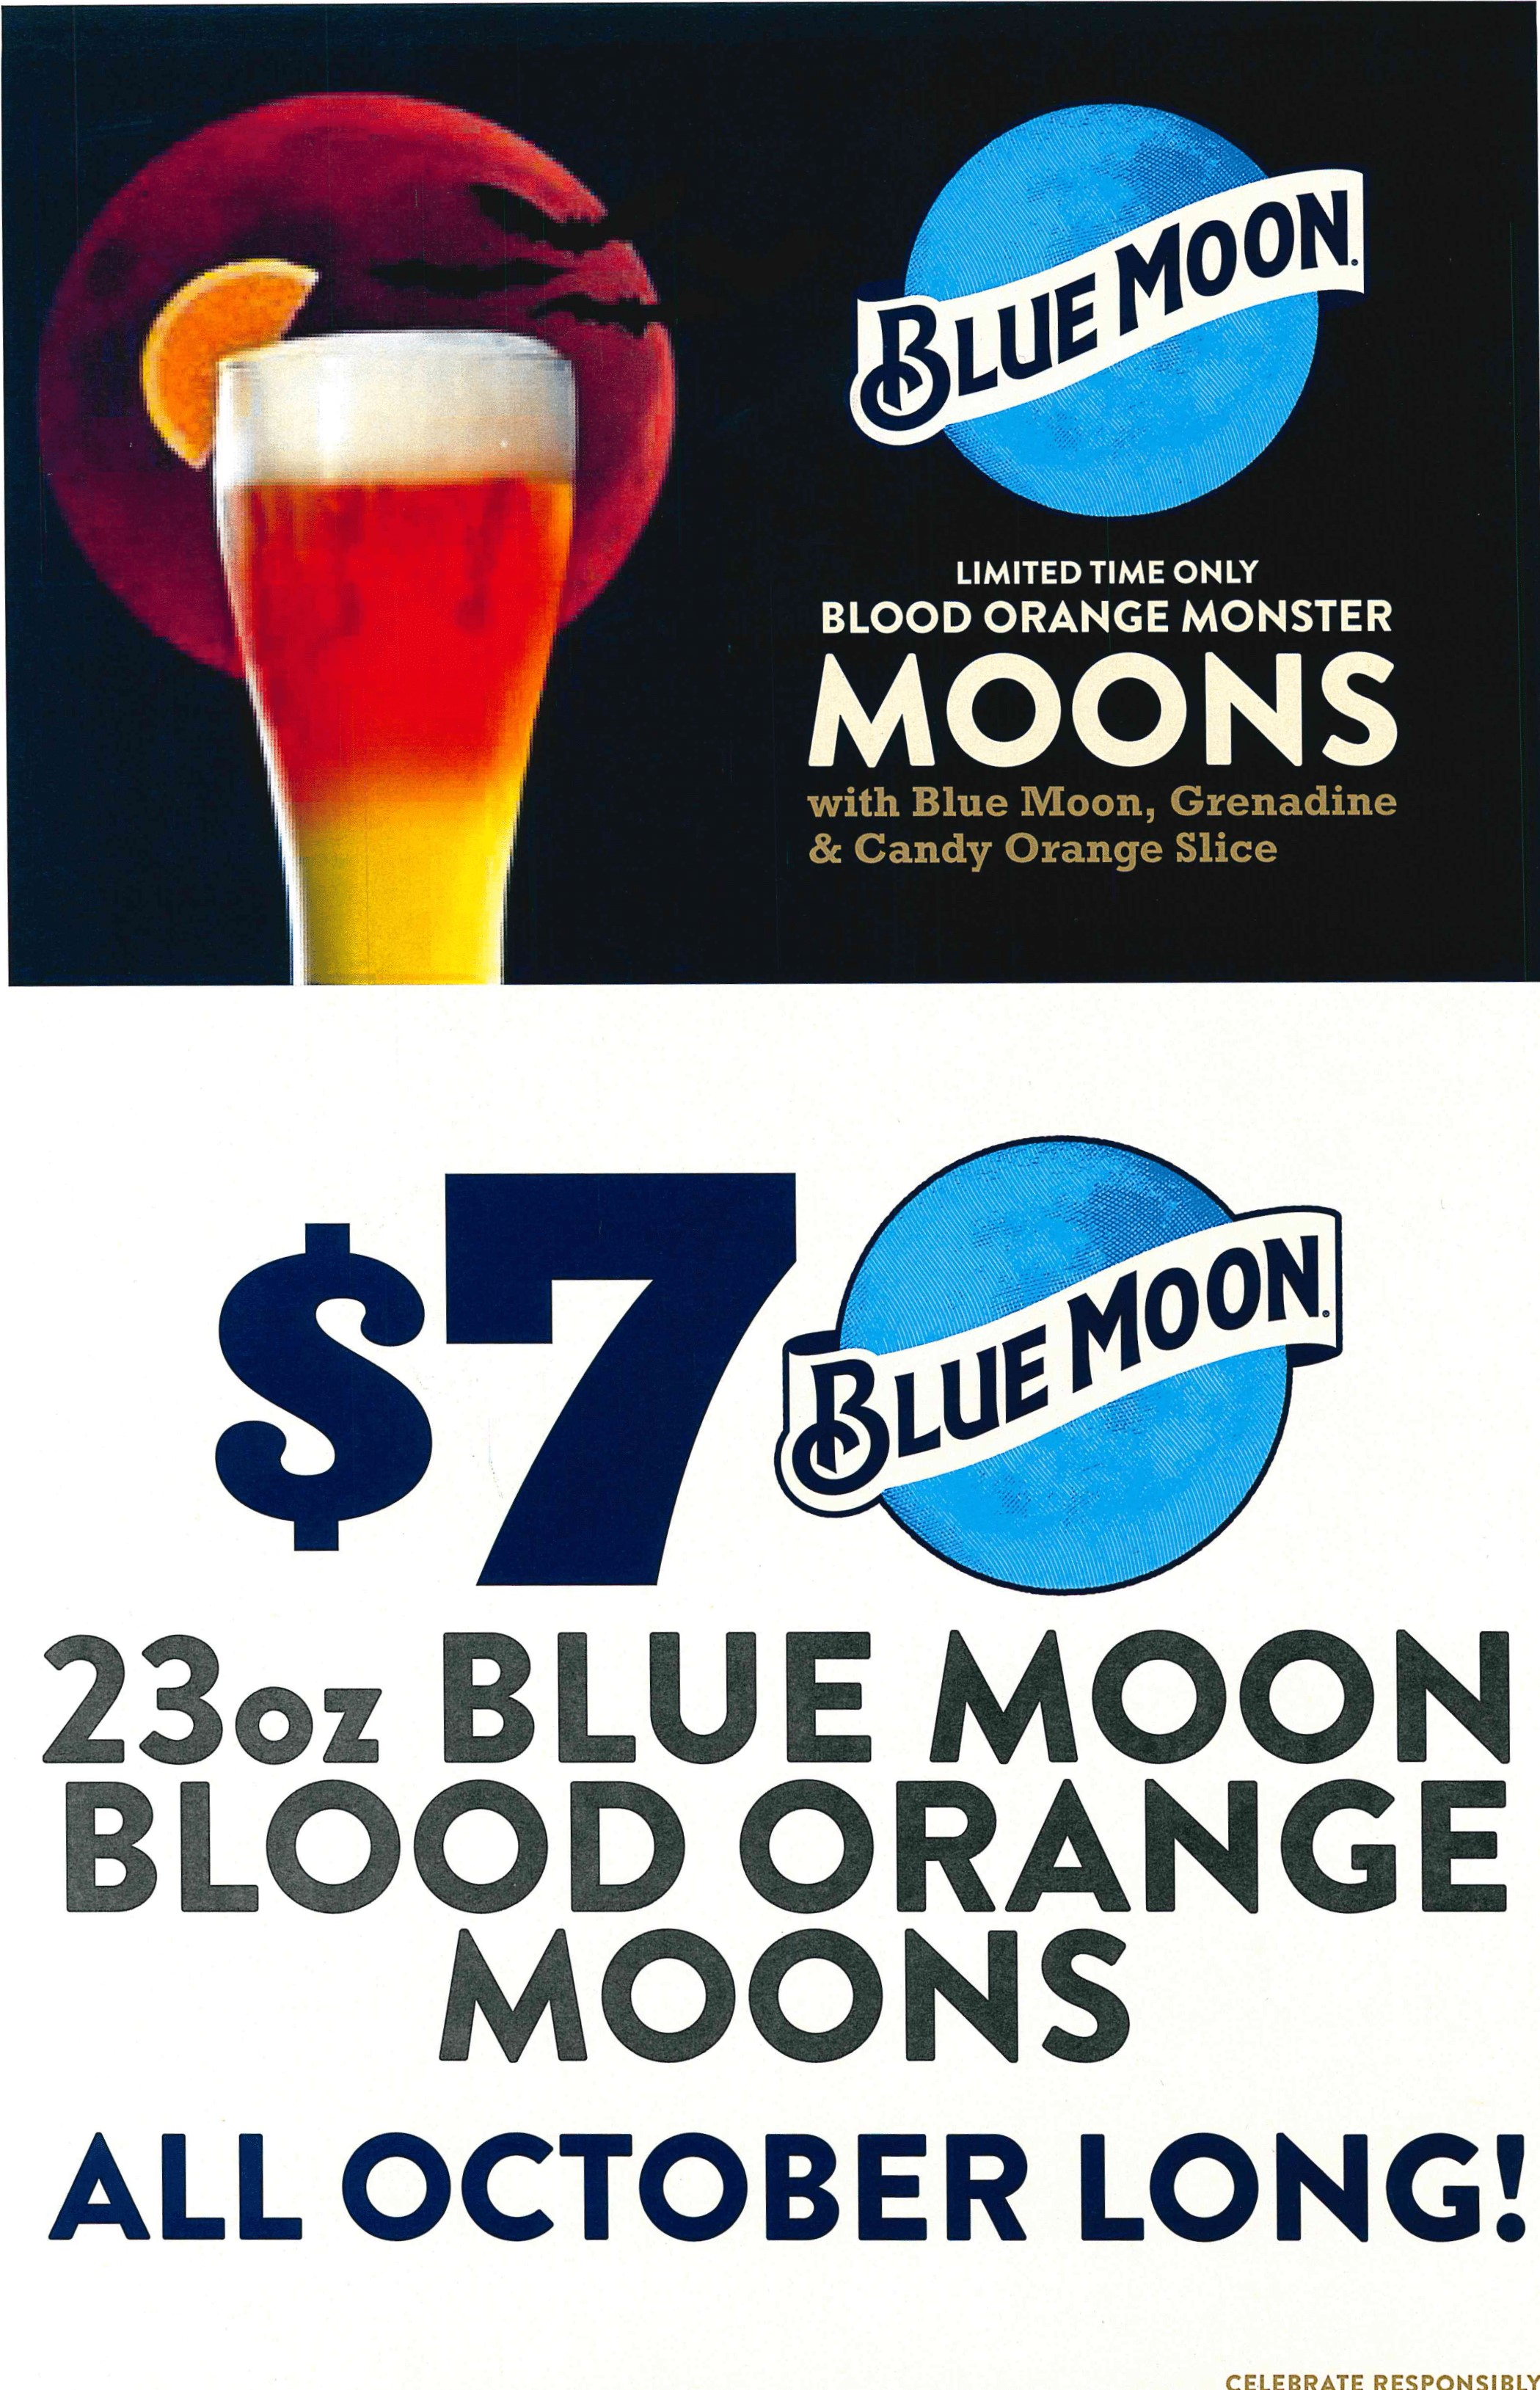 $7 23 ounce blue moon blood orange moons all october long!